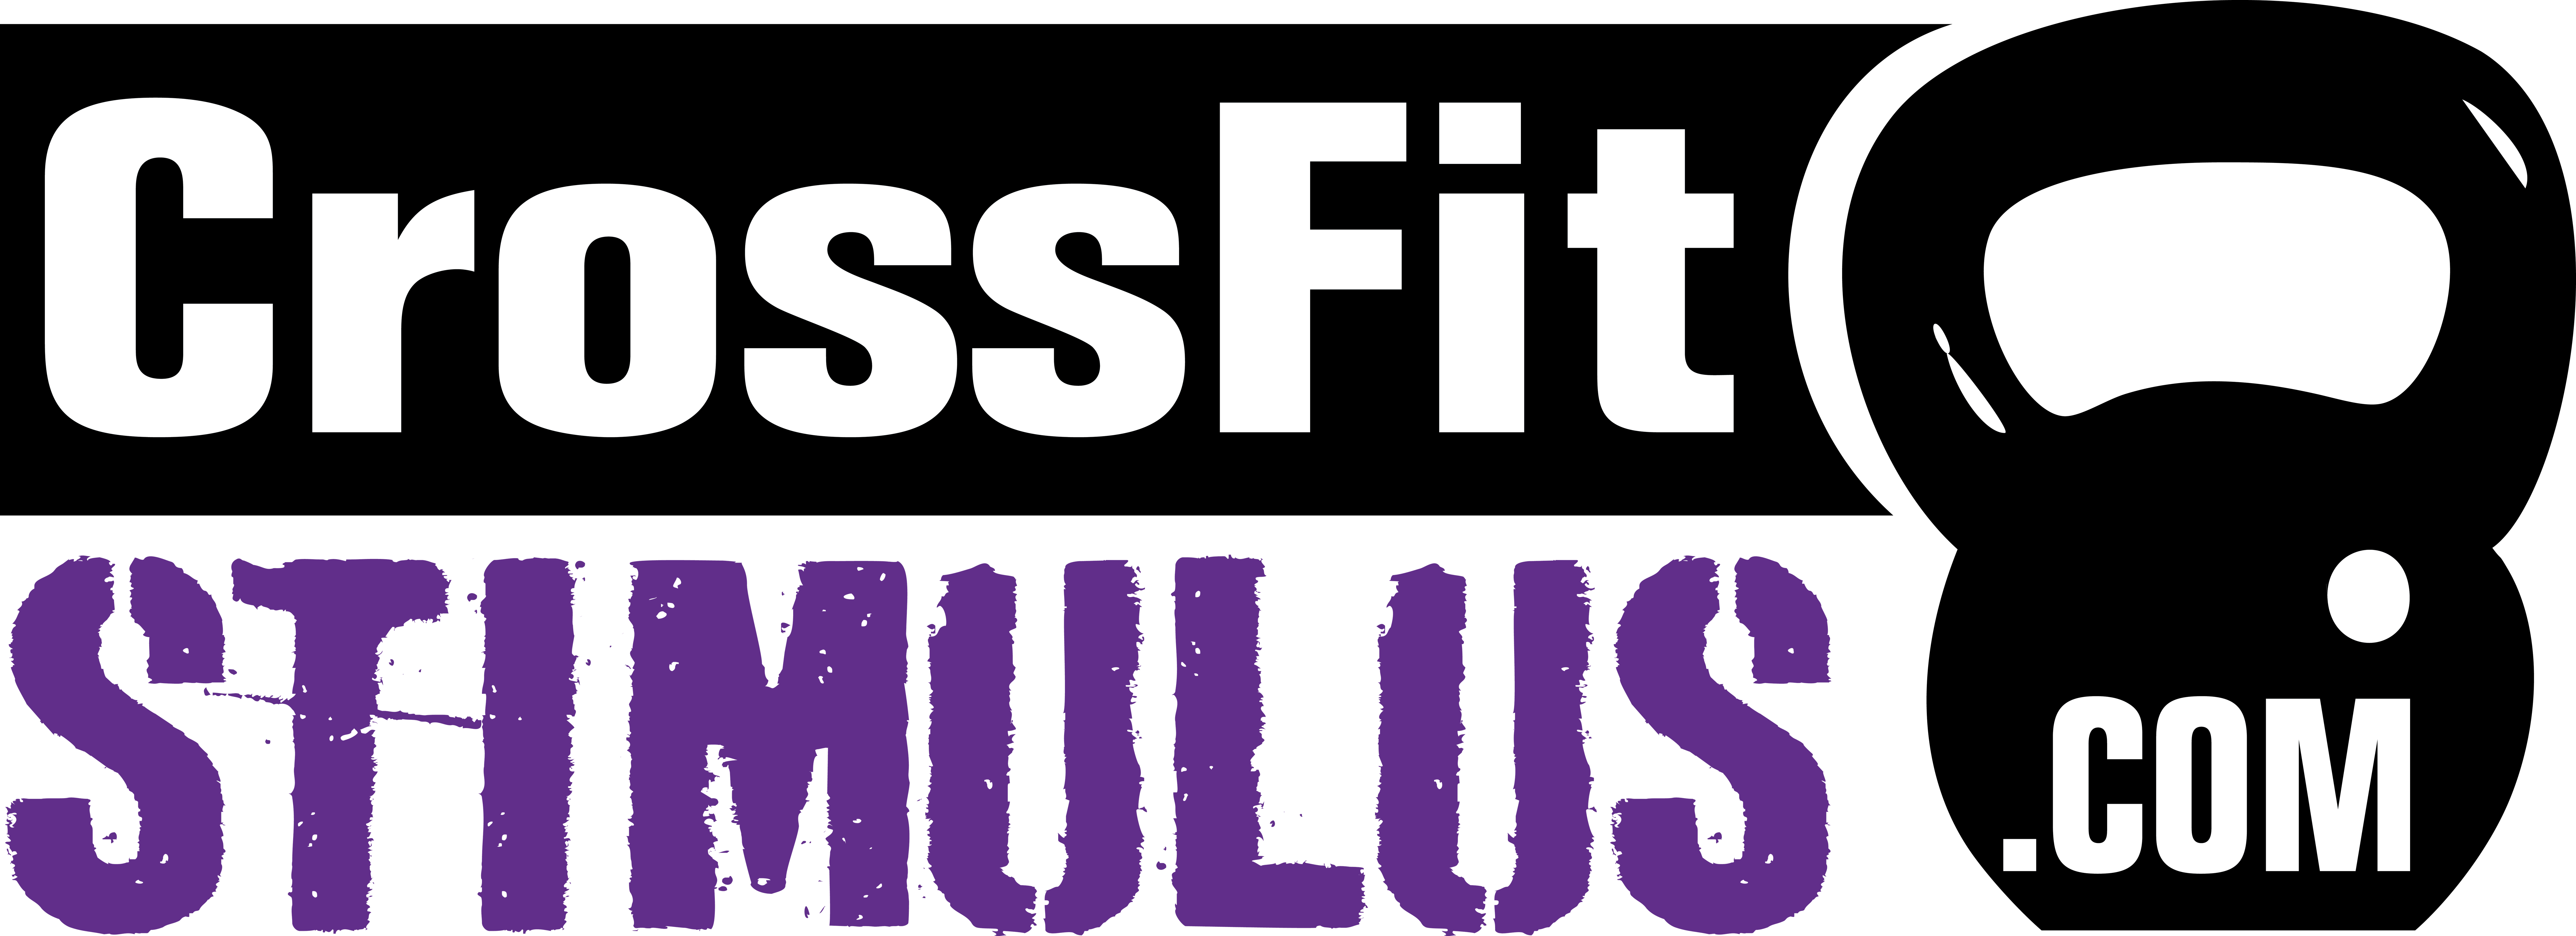 cross-fit-logo-curves-9900px.png